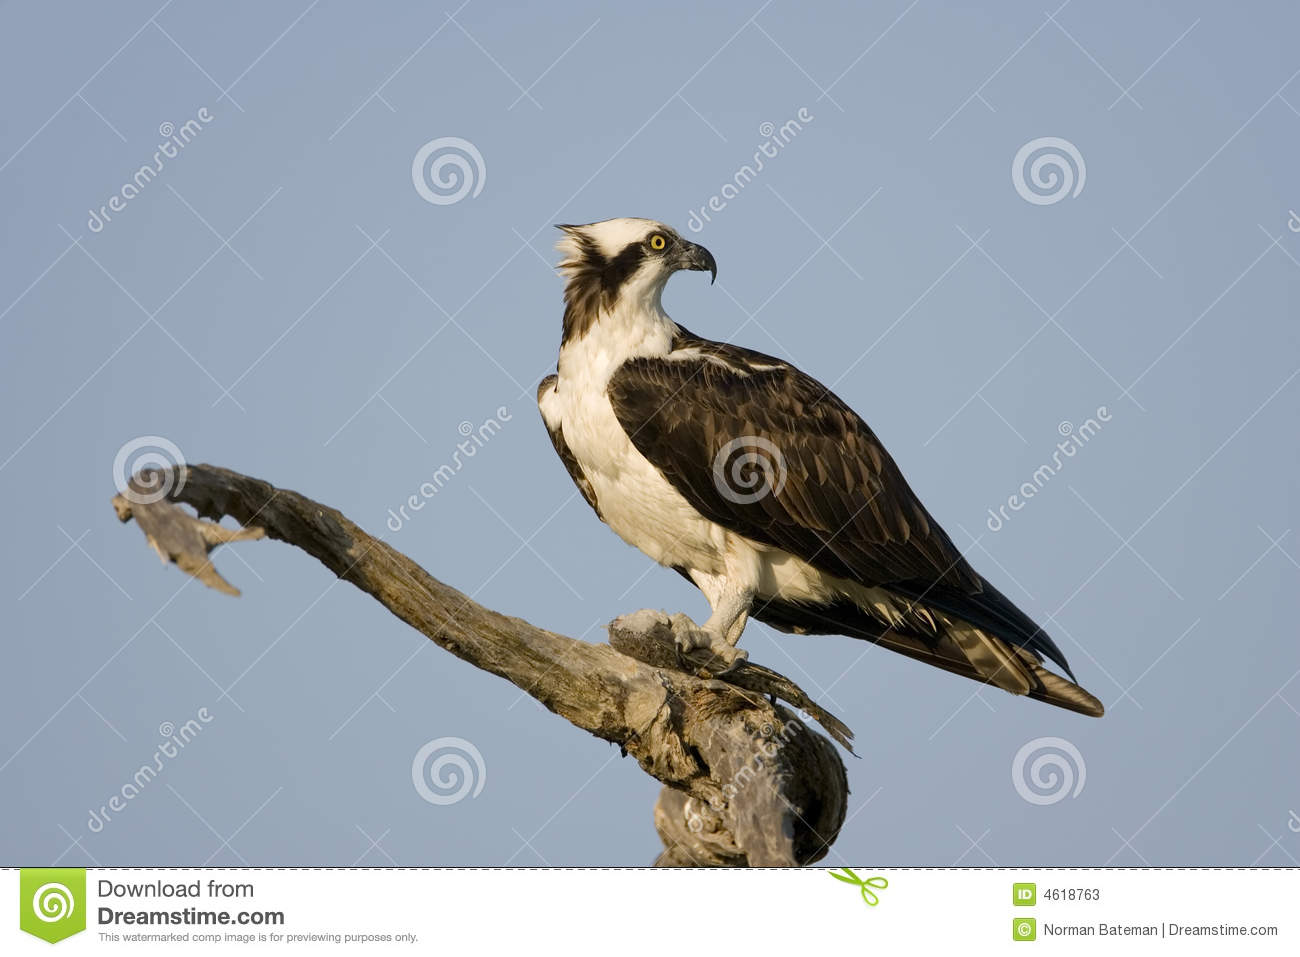 An Osprey in a tree eating a fish